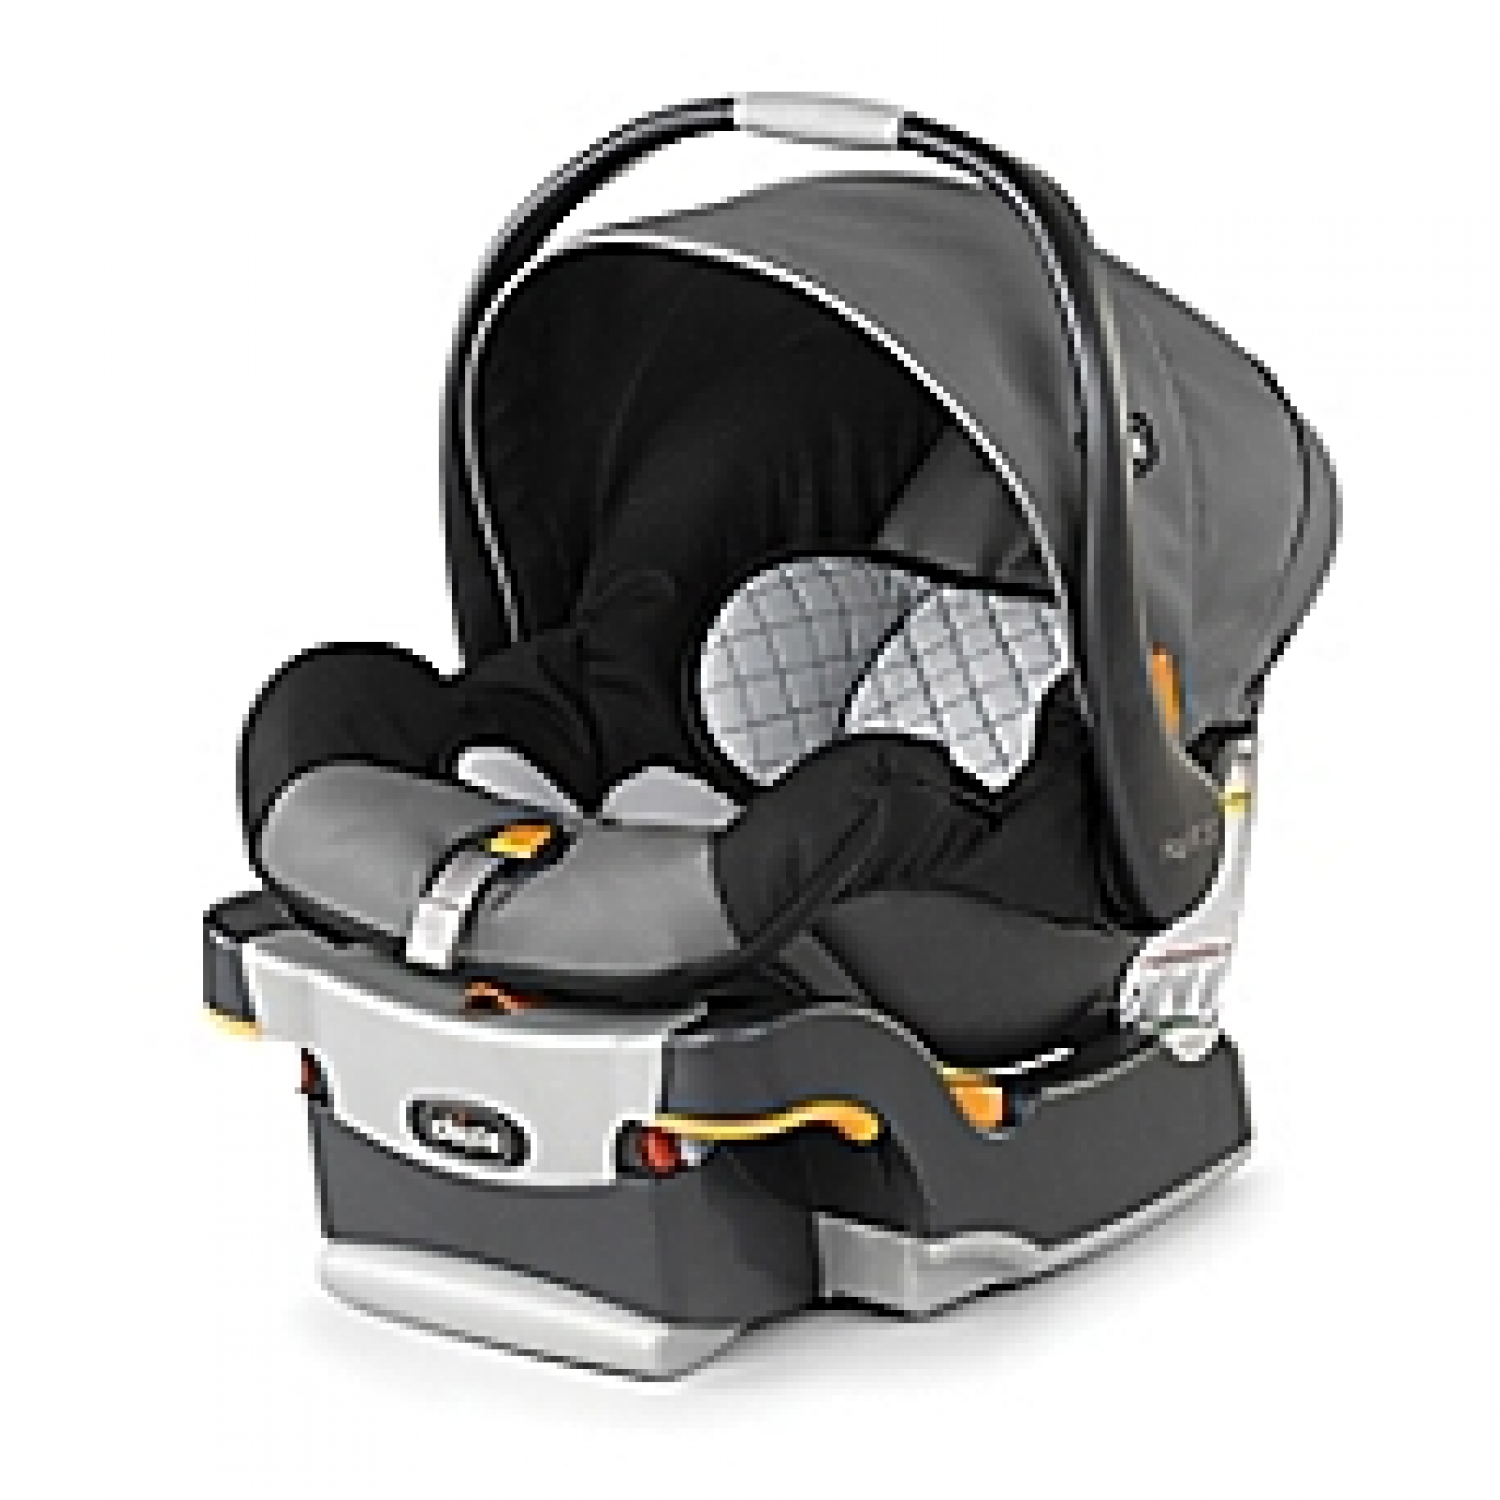 4e51ea651 Chicco Keyfit 30 Infant Car Seat - Orion